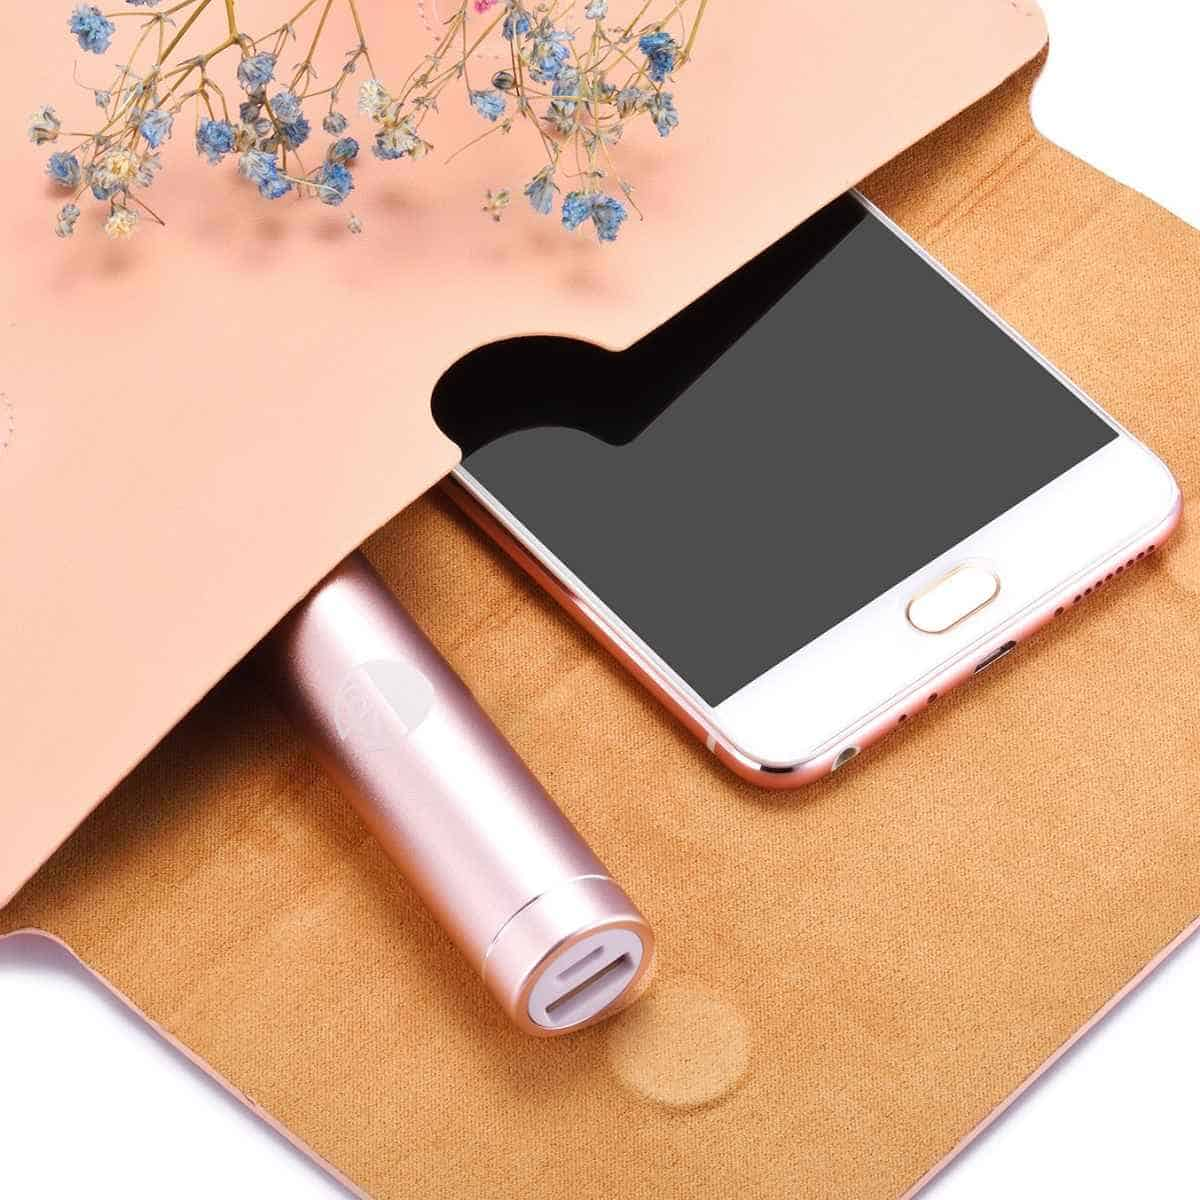 AGS™ Lipstick-Sized Power Bank | Get These Tech Gadgets Via Amazon Prime